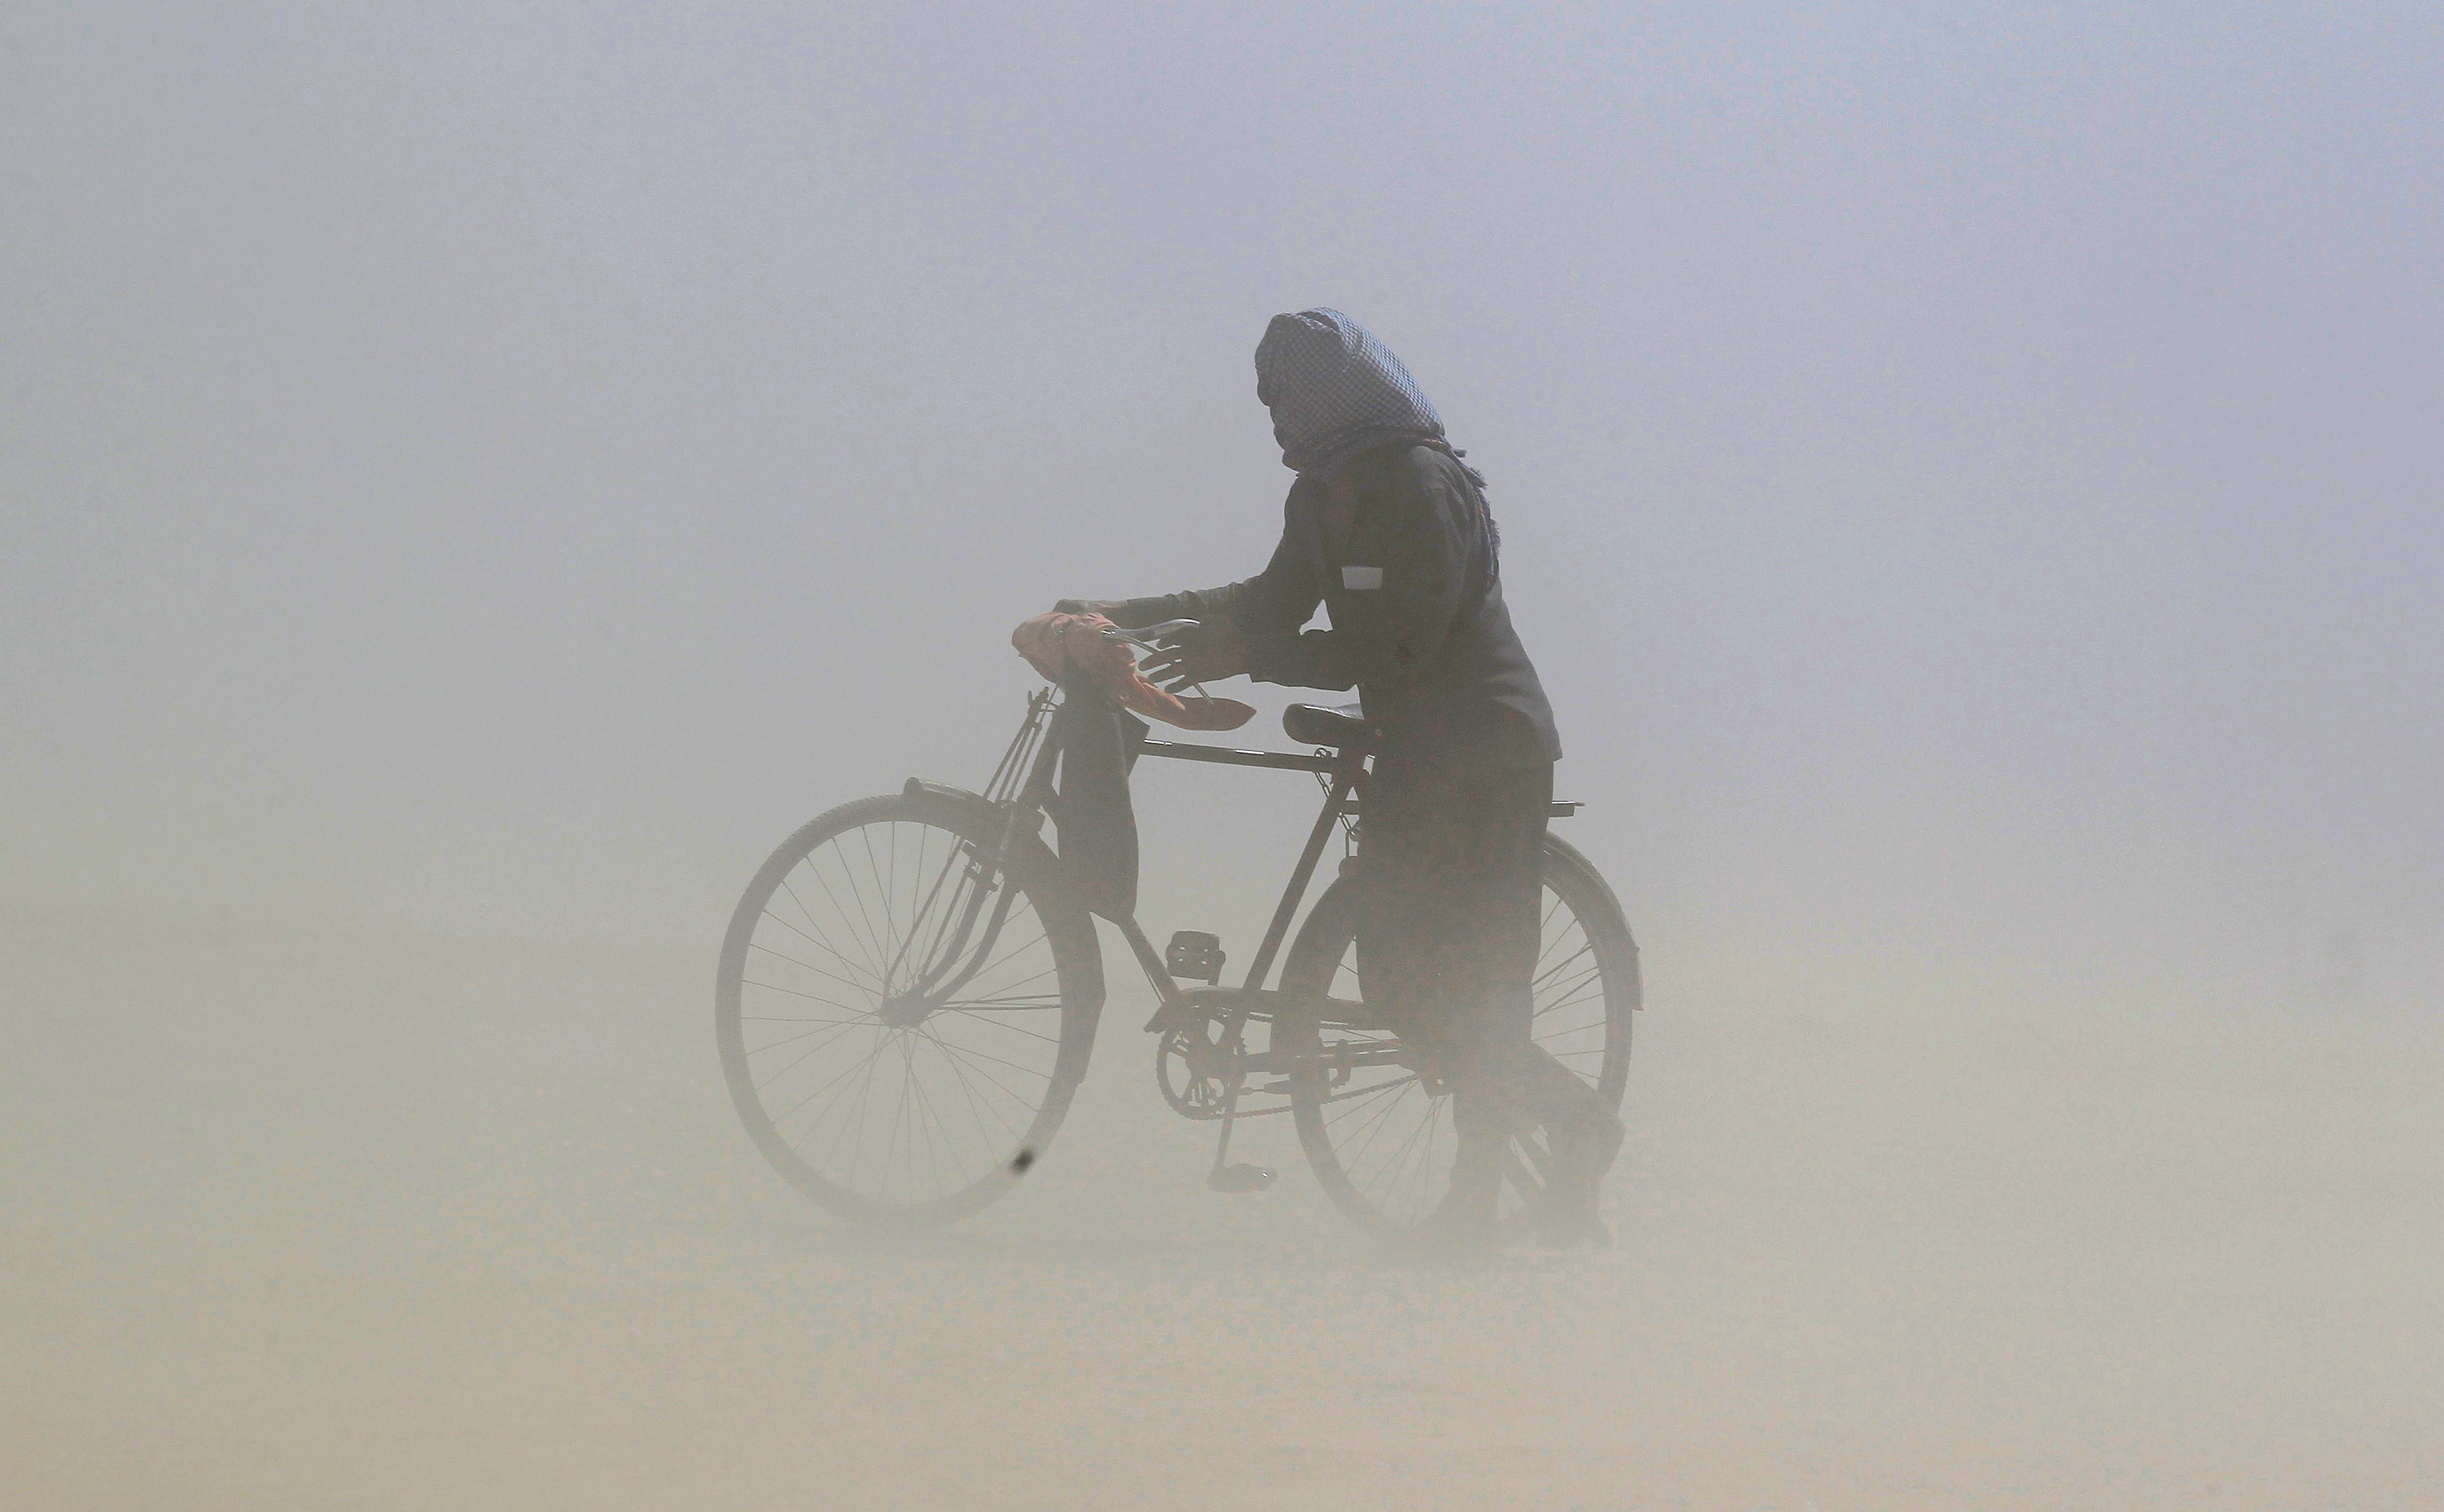 A man covers his face as he pushes a bicycle through a dust storm on the banks of the Ganga river in Allahabad, India